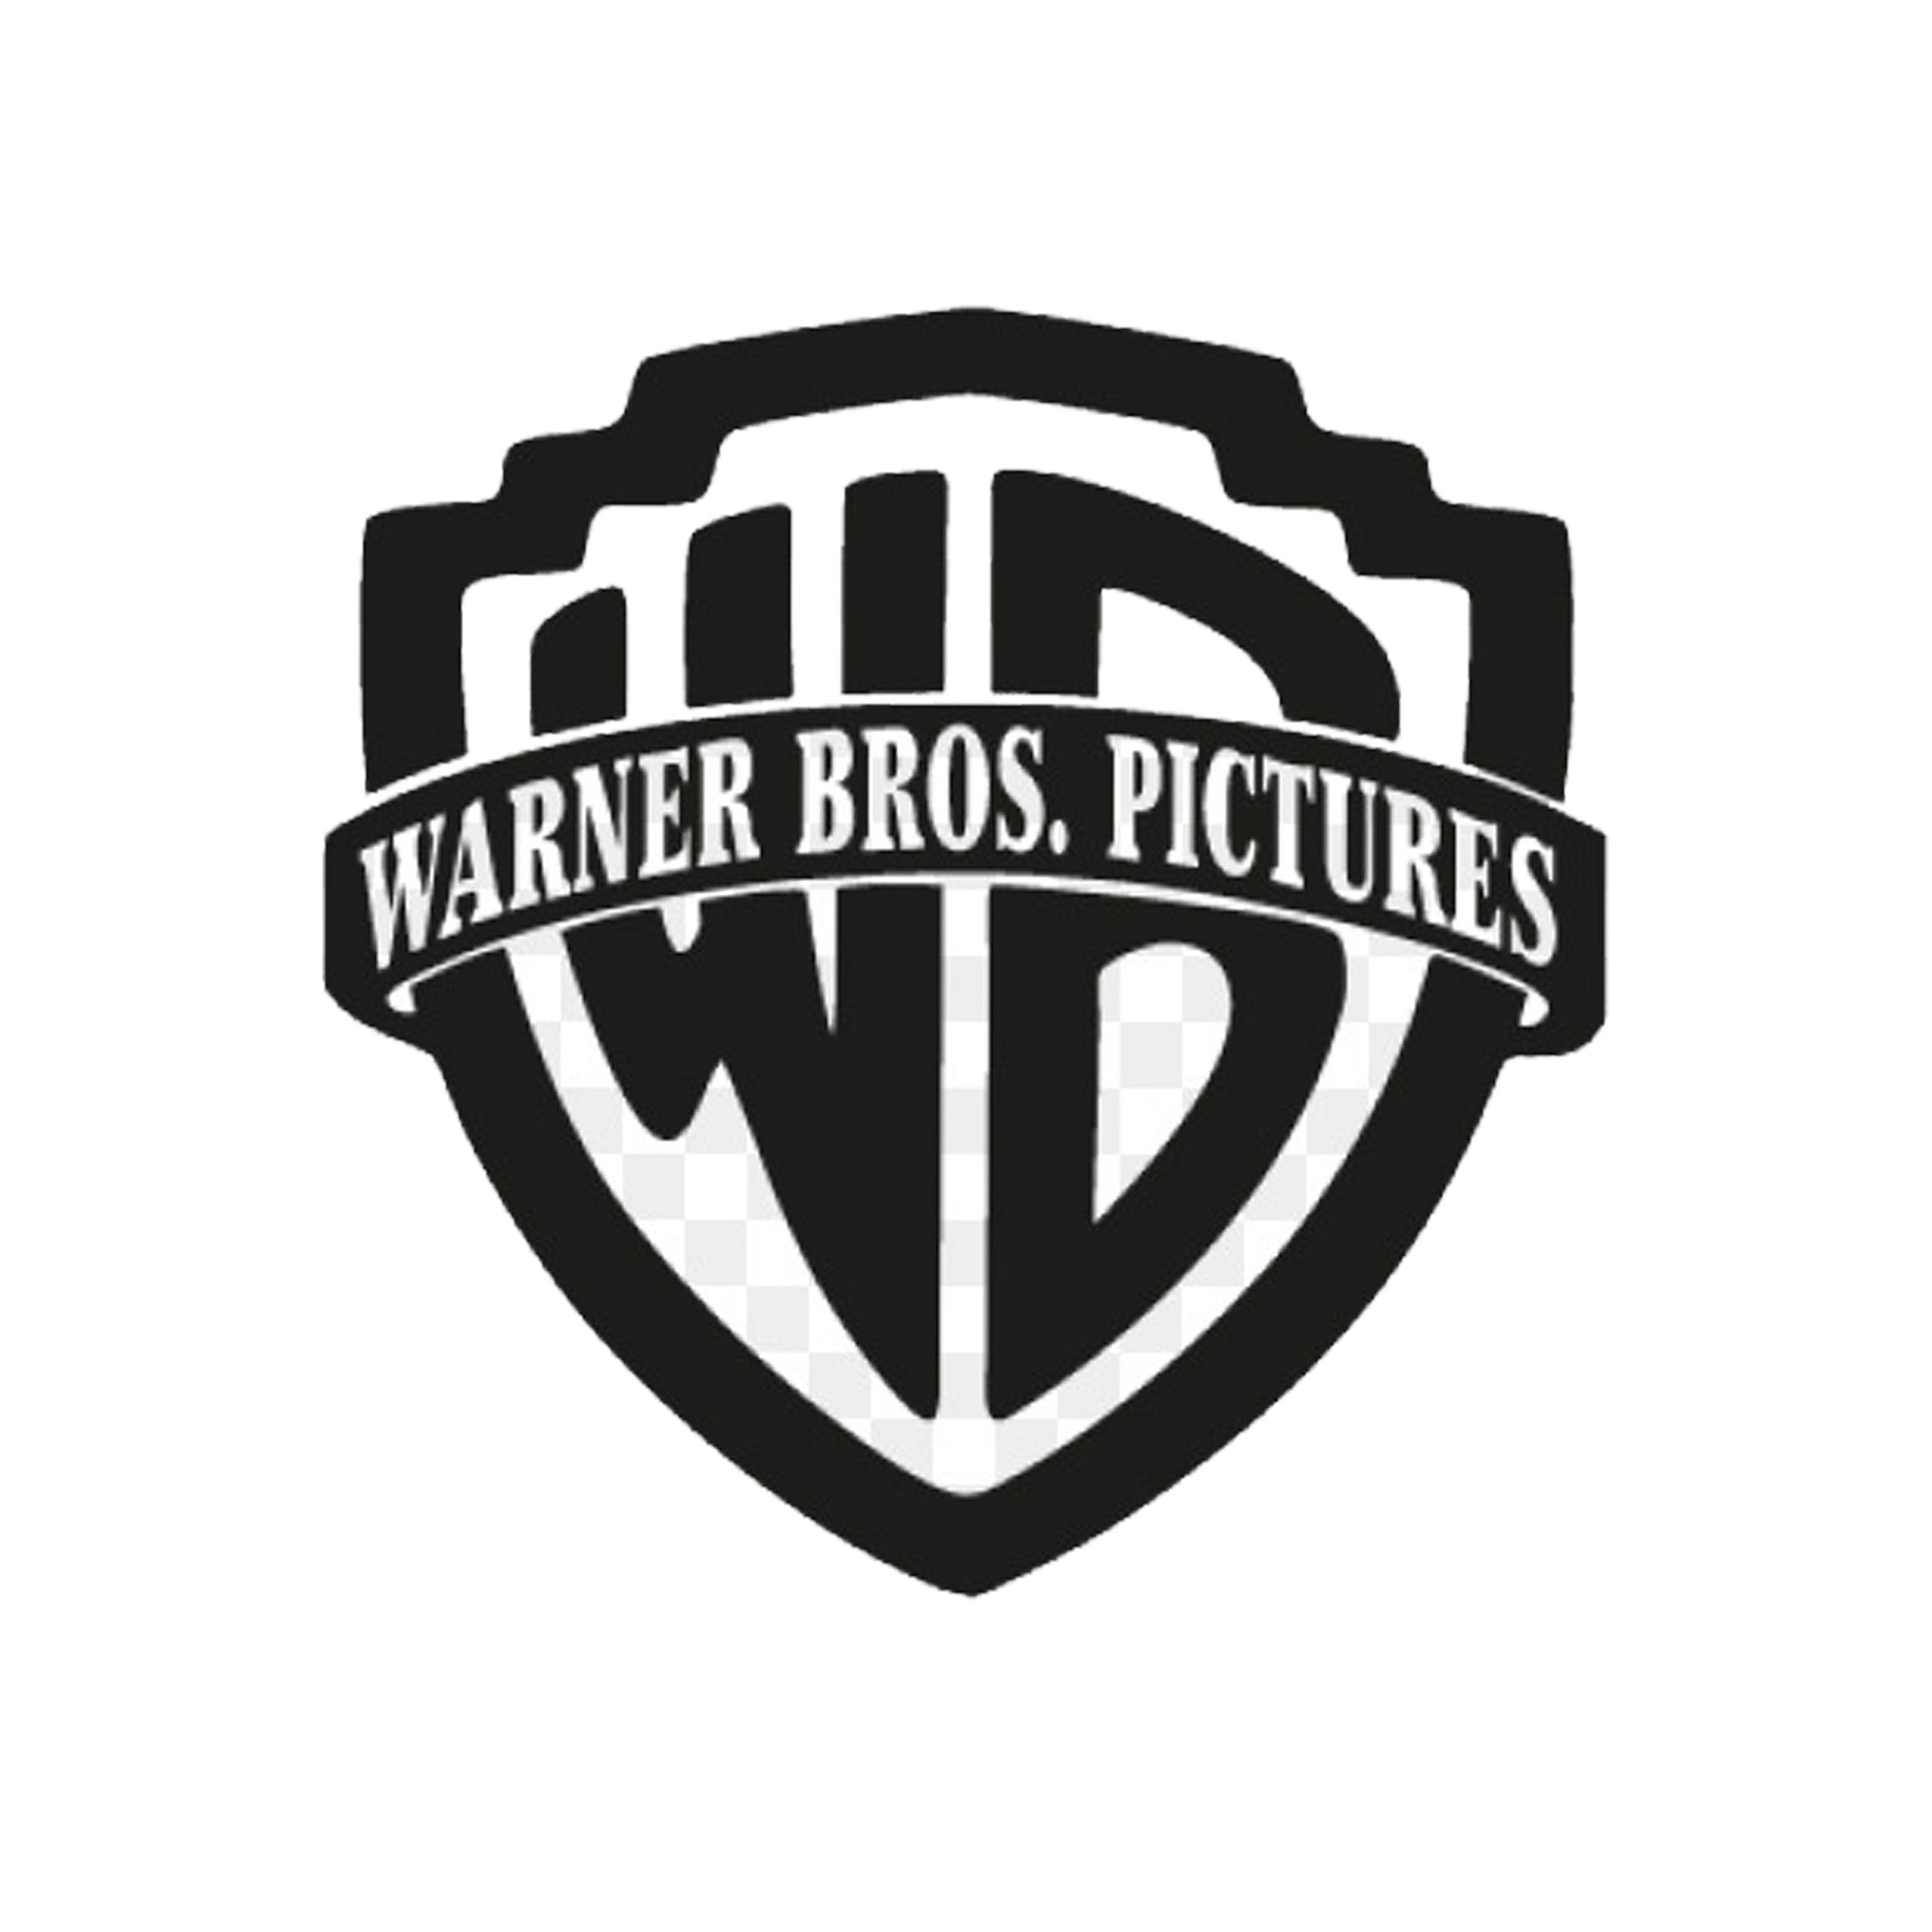 Warner Bros. Picture Logo.jpg